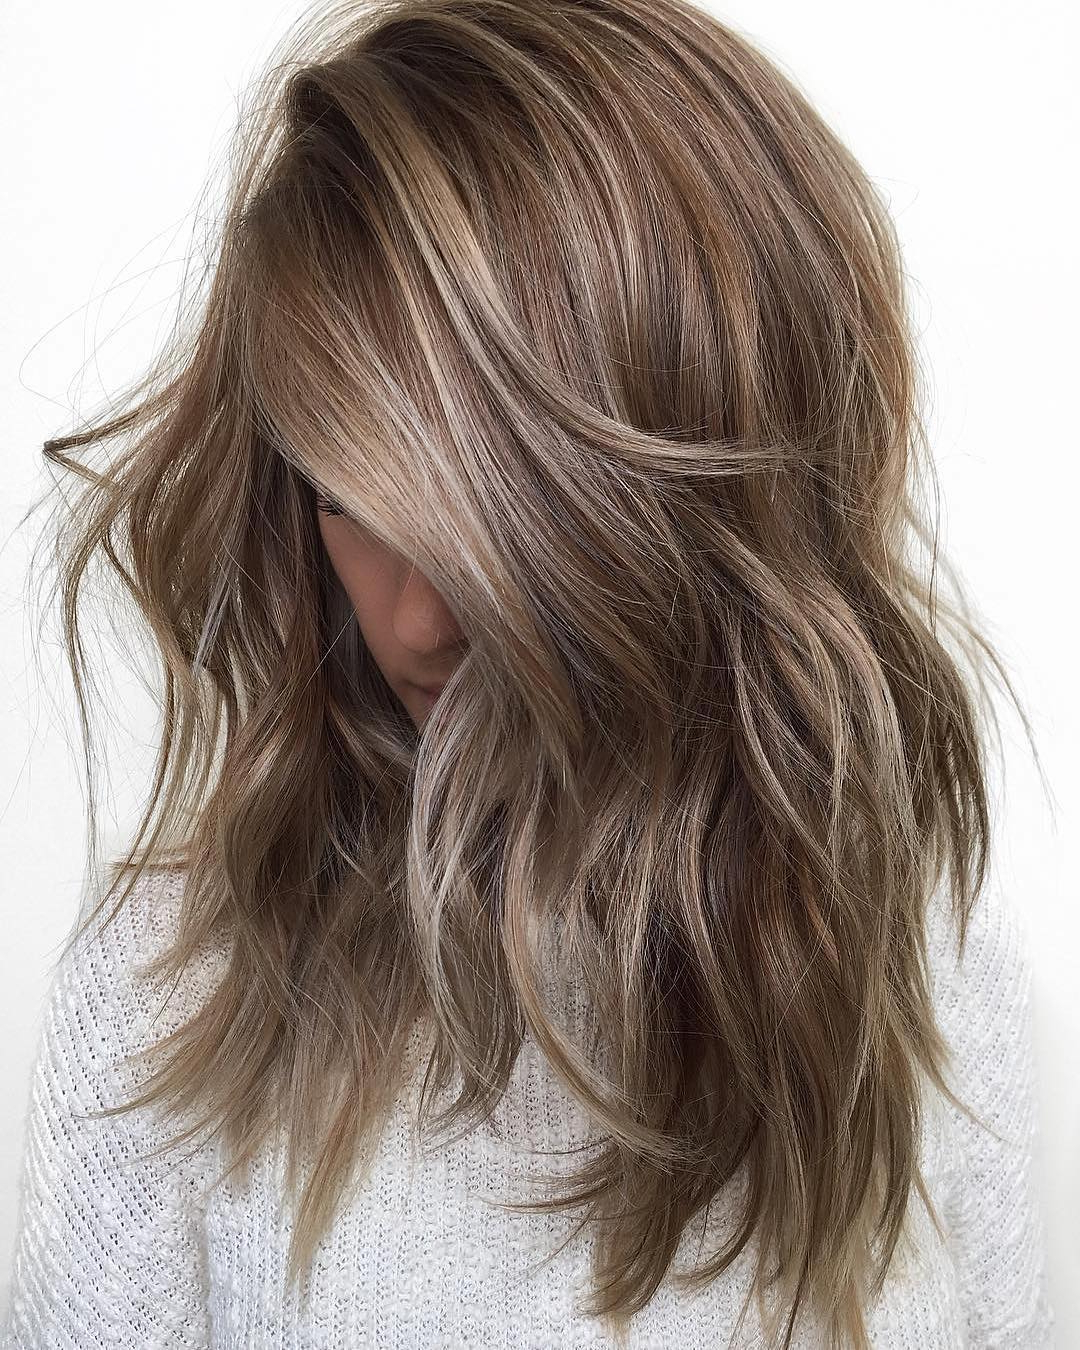 10 Balayage Ombre Hair Styles For Shoulder Length Hair, Women Inside Most Recent Long Layered Ombre Hairstyles (View 1 of 20)